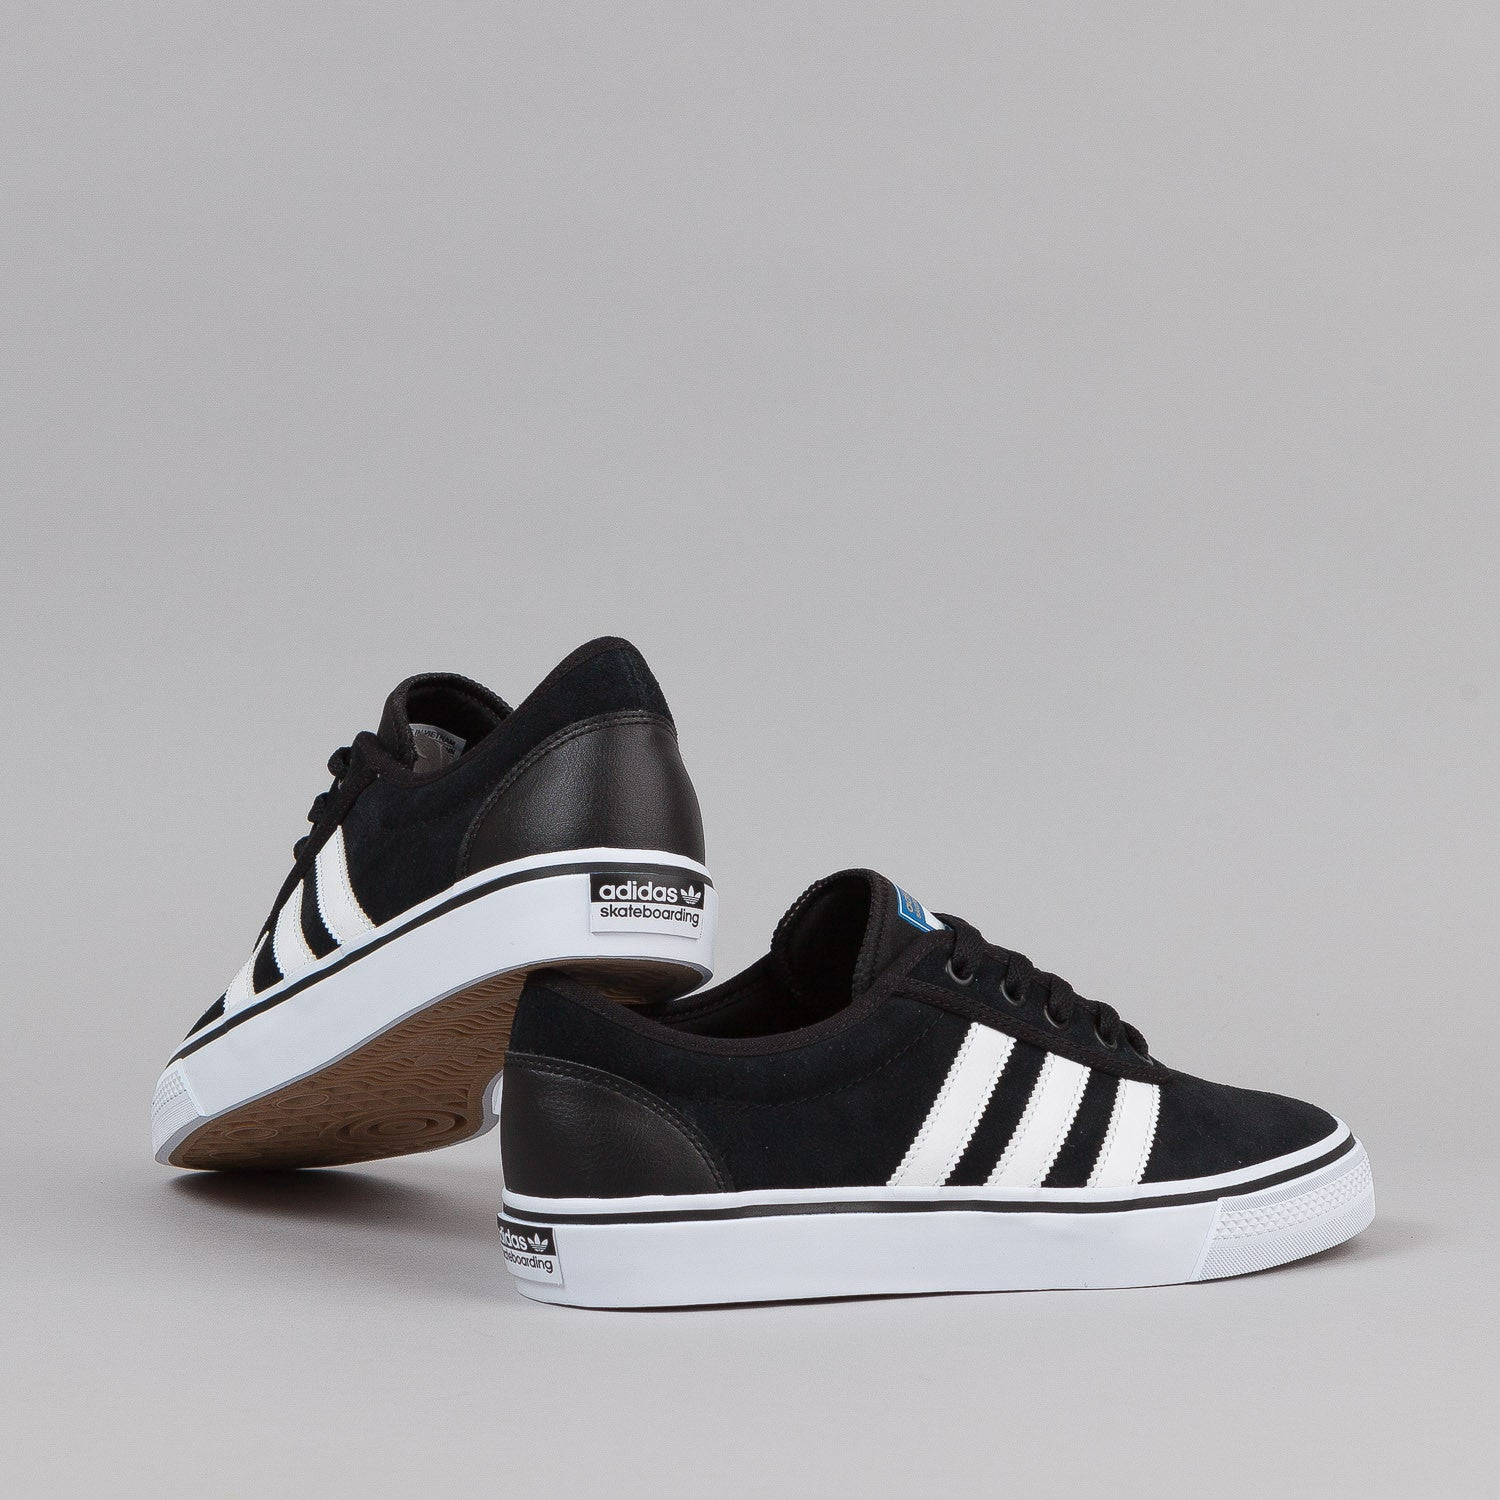 Adidas Adi-Ease Adv Shoes - Core Black / White / Bluebird